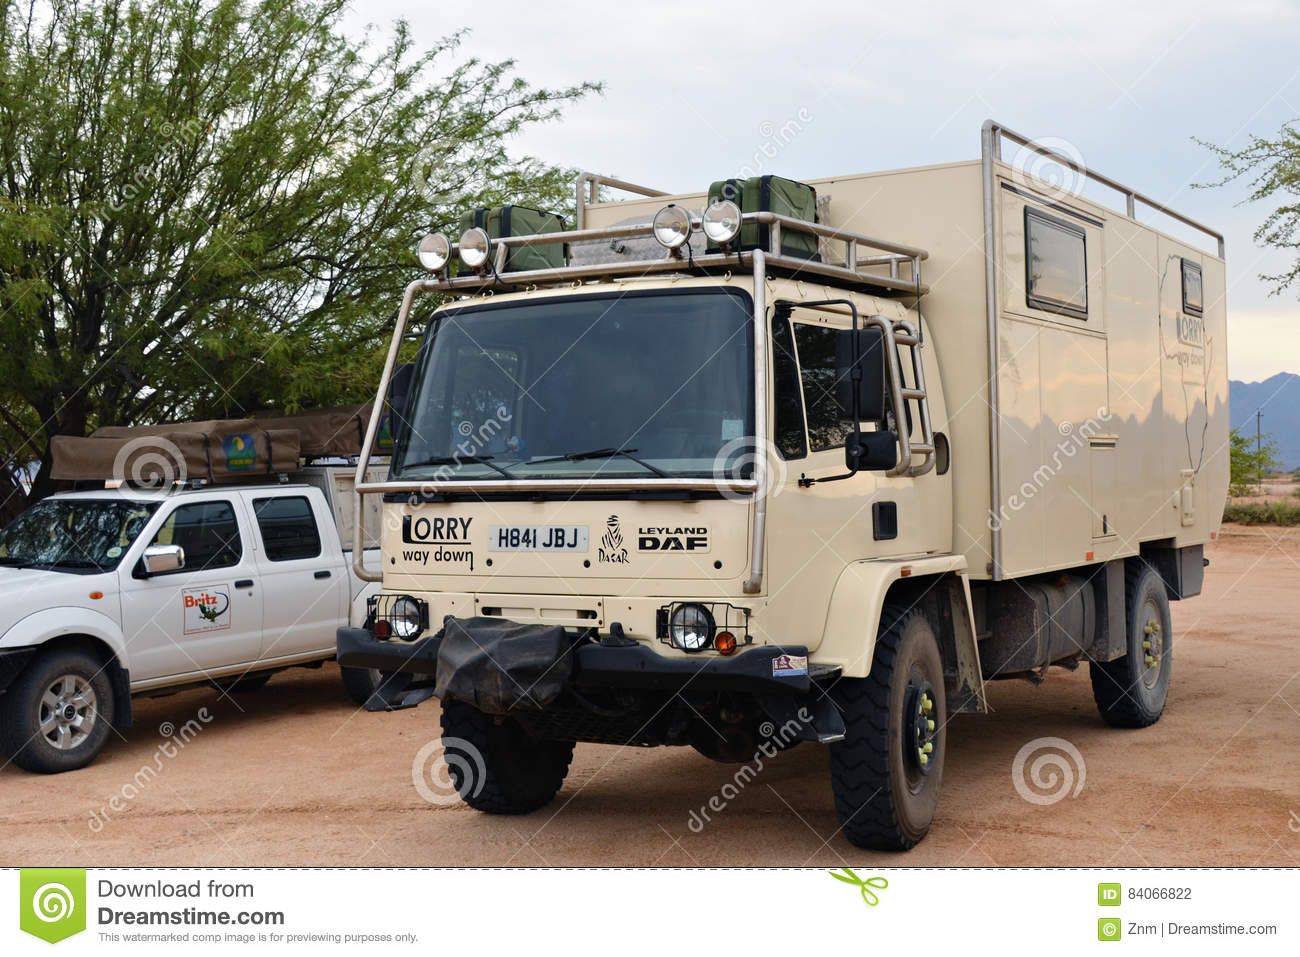 Overlanding In Namibia Africa Editorial Photography Image Of Parked Distance 84066822